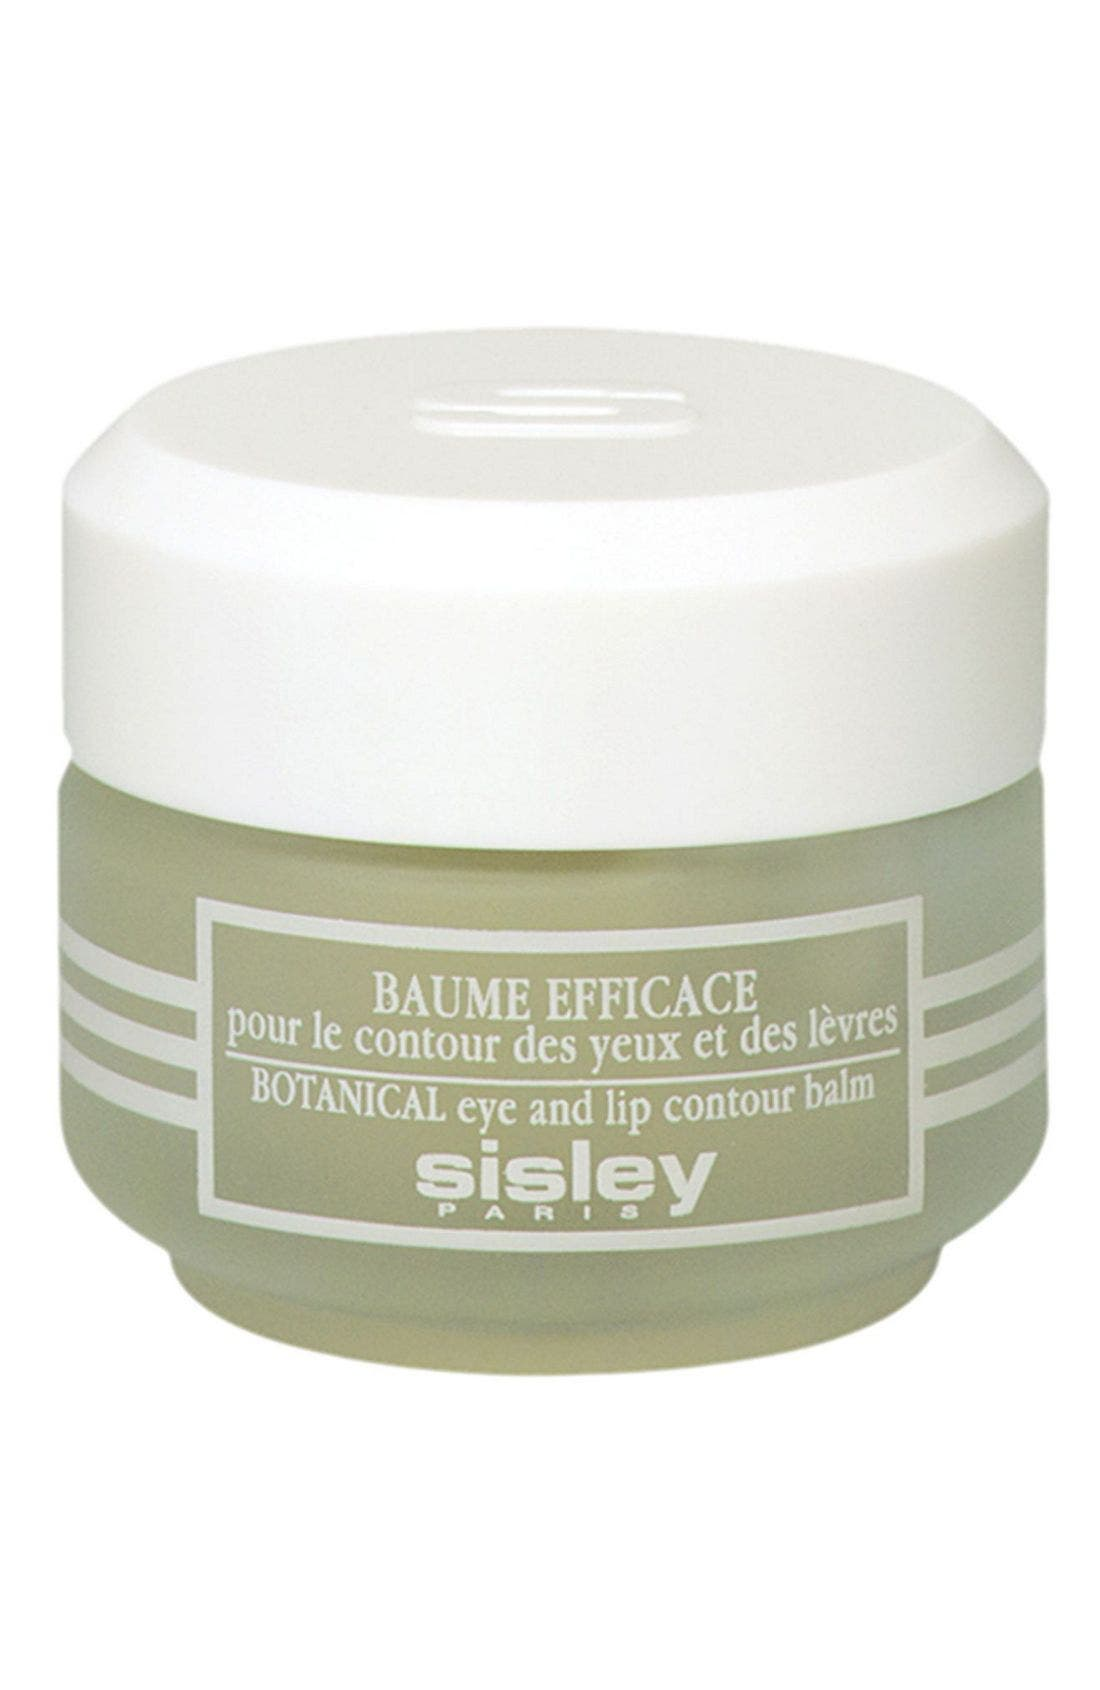 Sisley Paris Botanical Eye & Lip Contour Balm